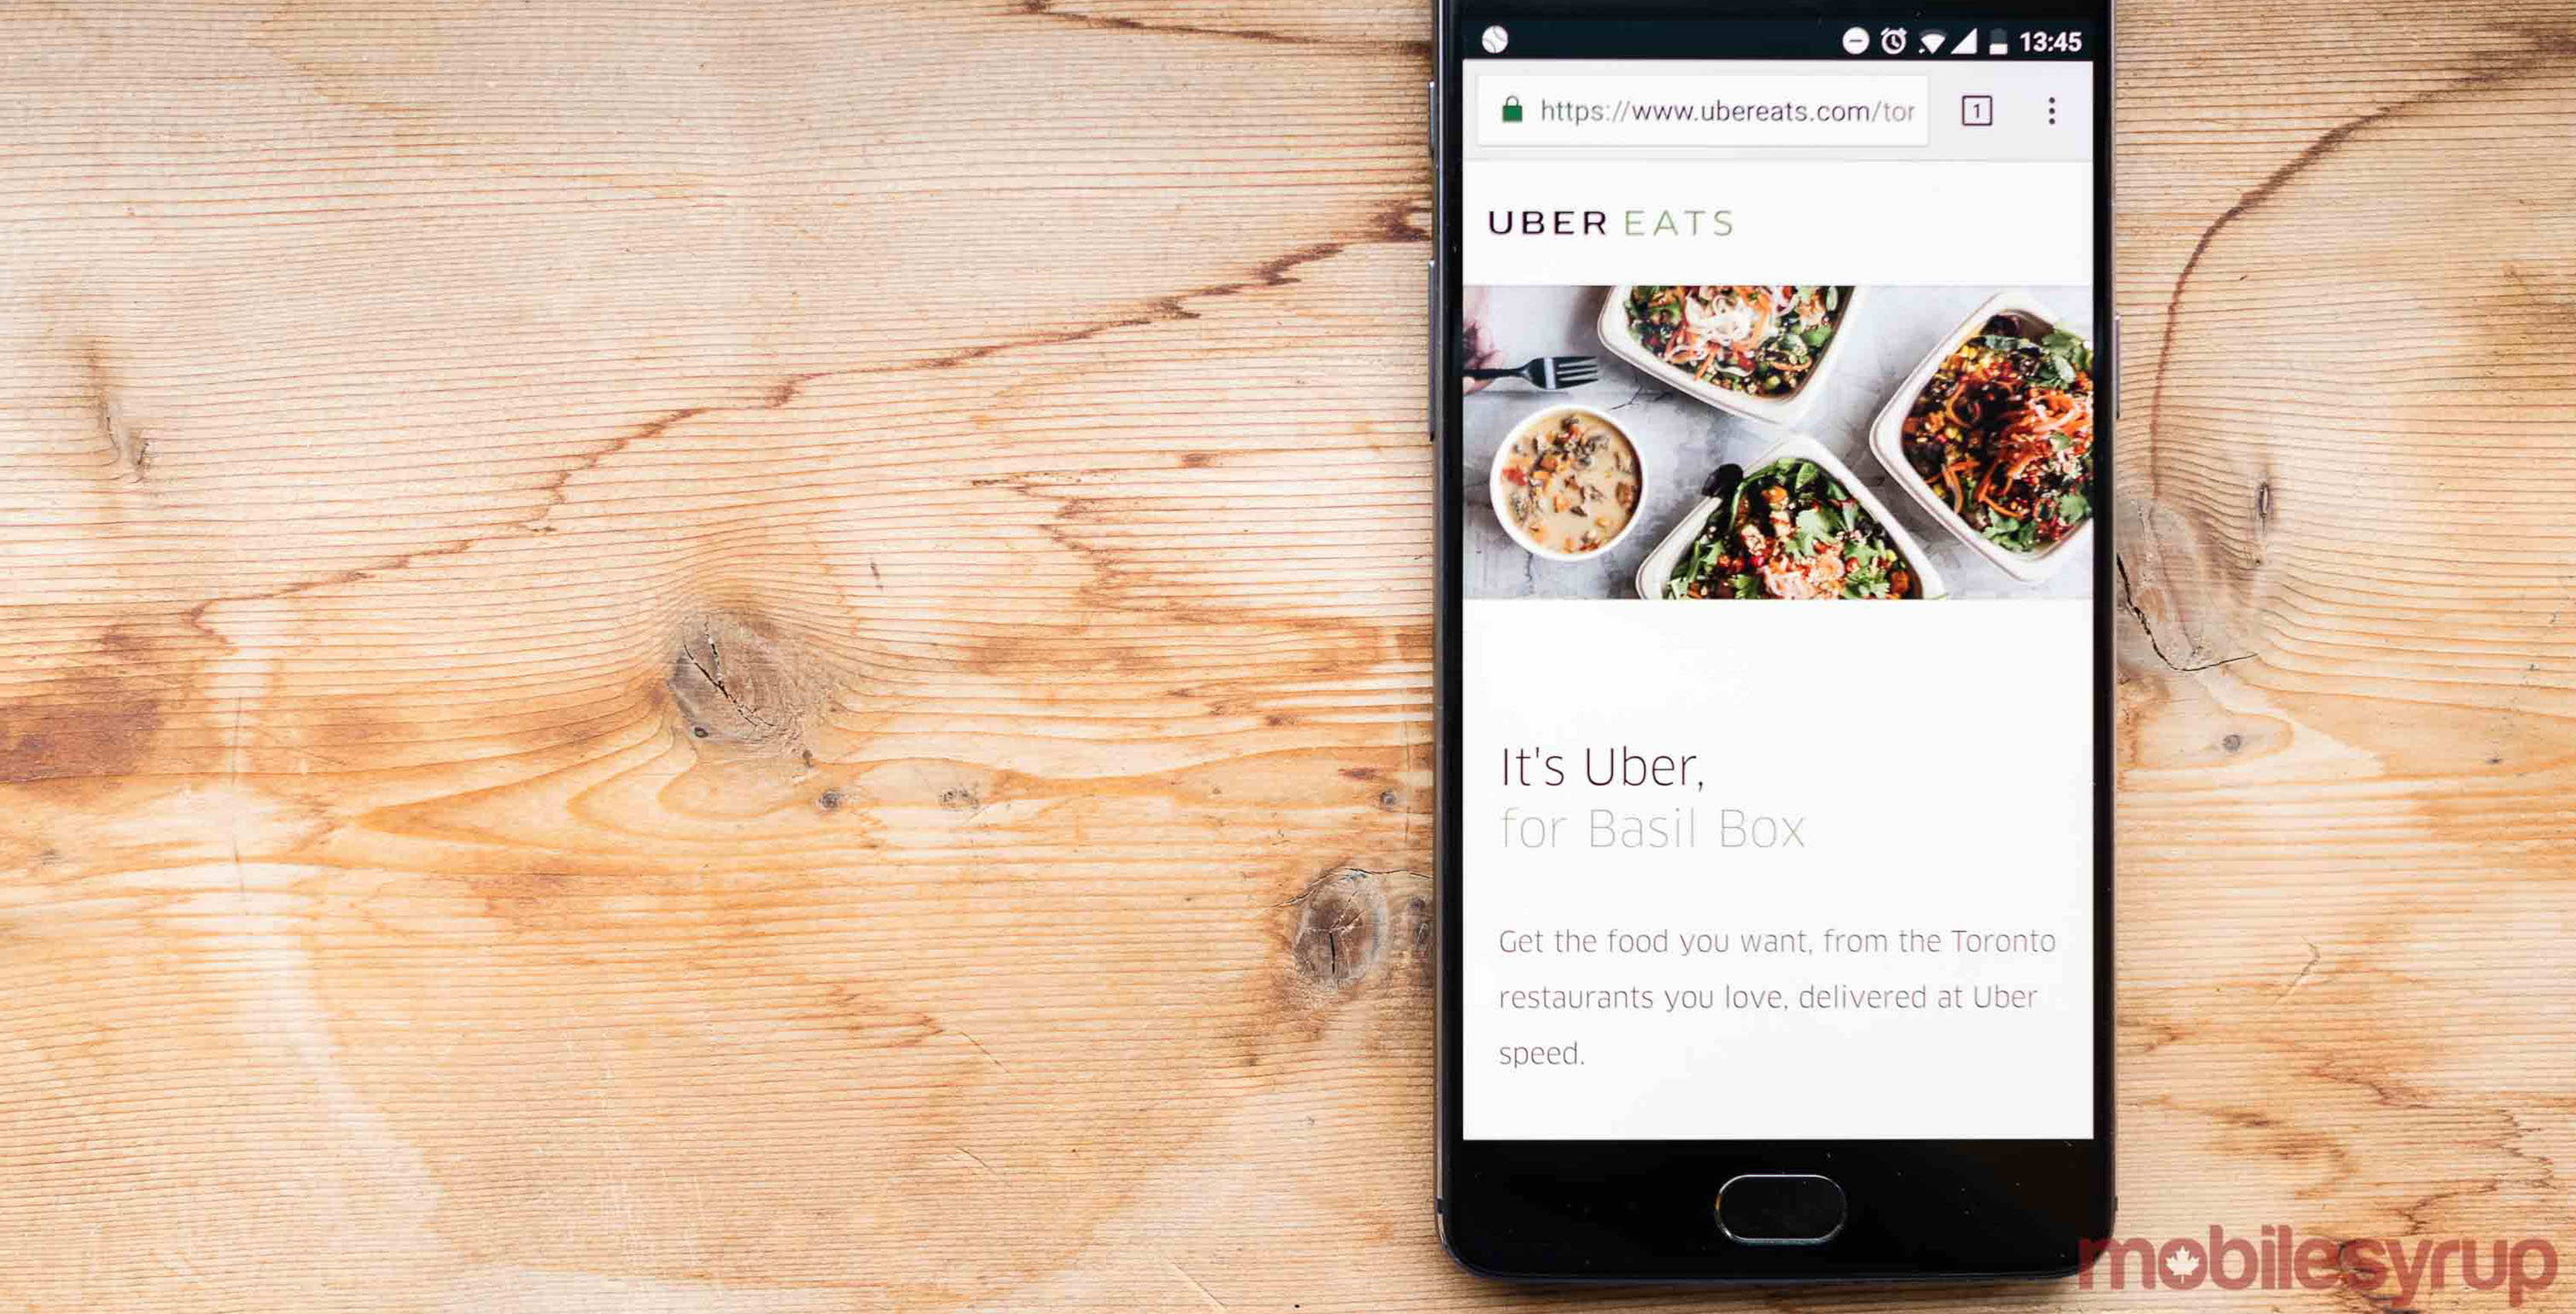 Torontonians have reported getting scammed by Uber Eats drivers